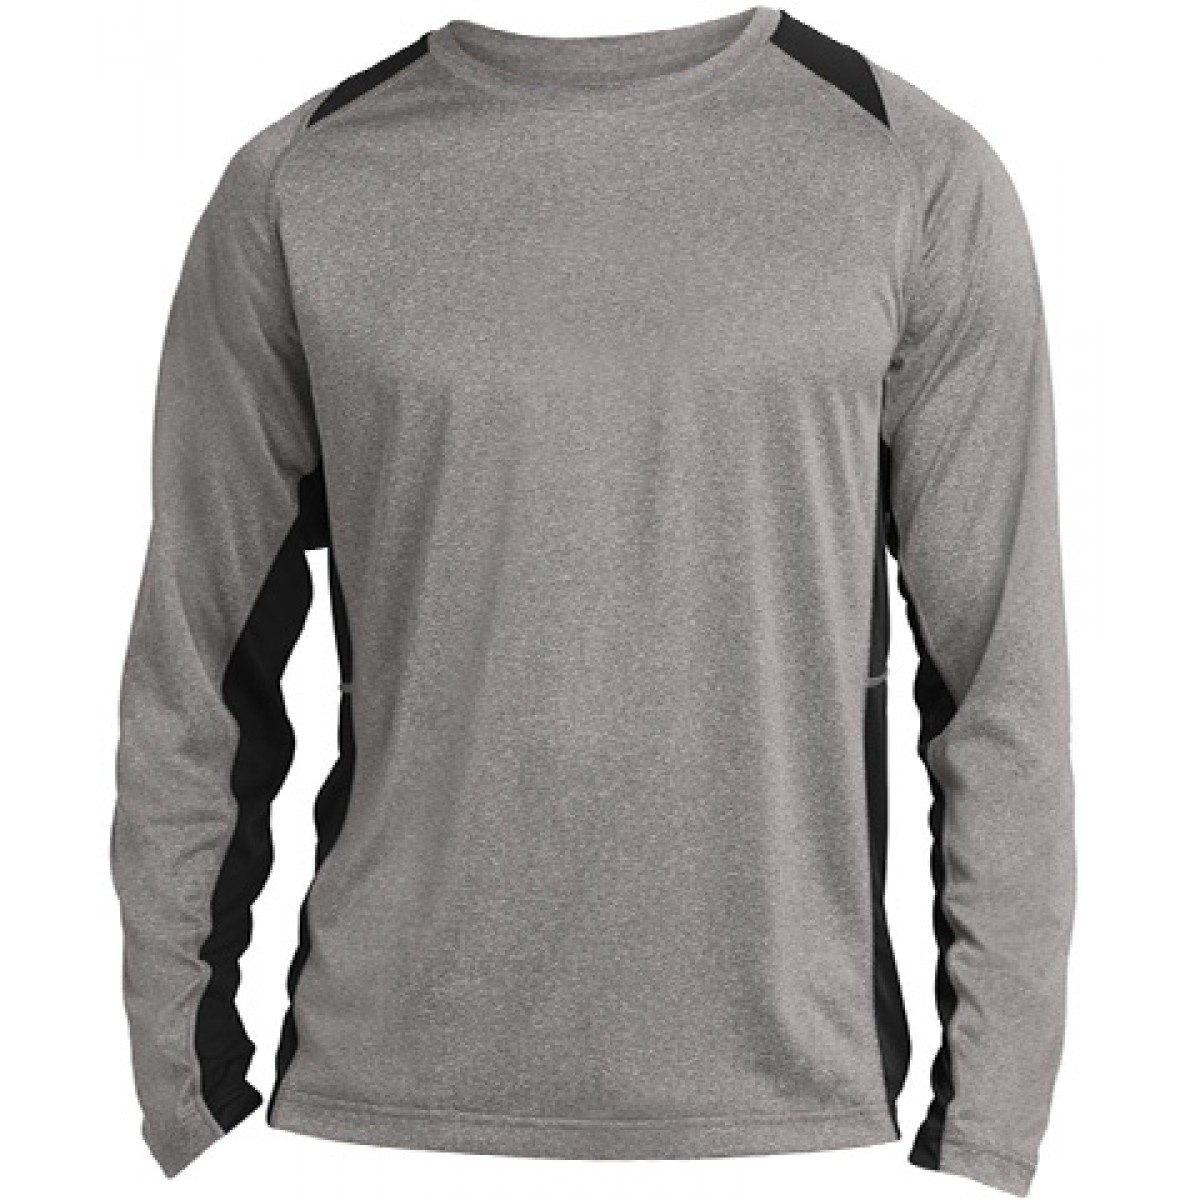 Long Sleeve Heather Colorblock Contender-Gray/Black-3XL